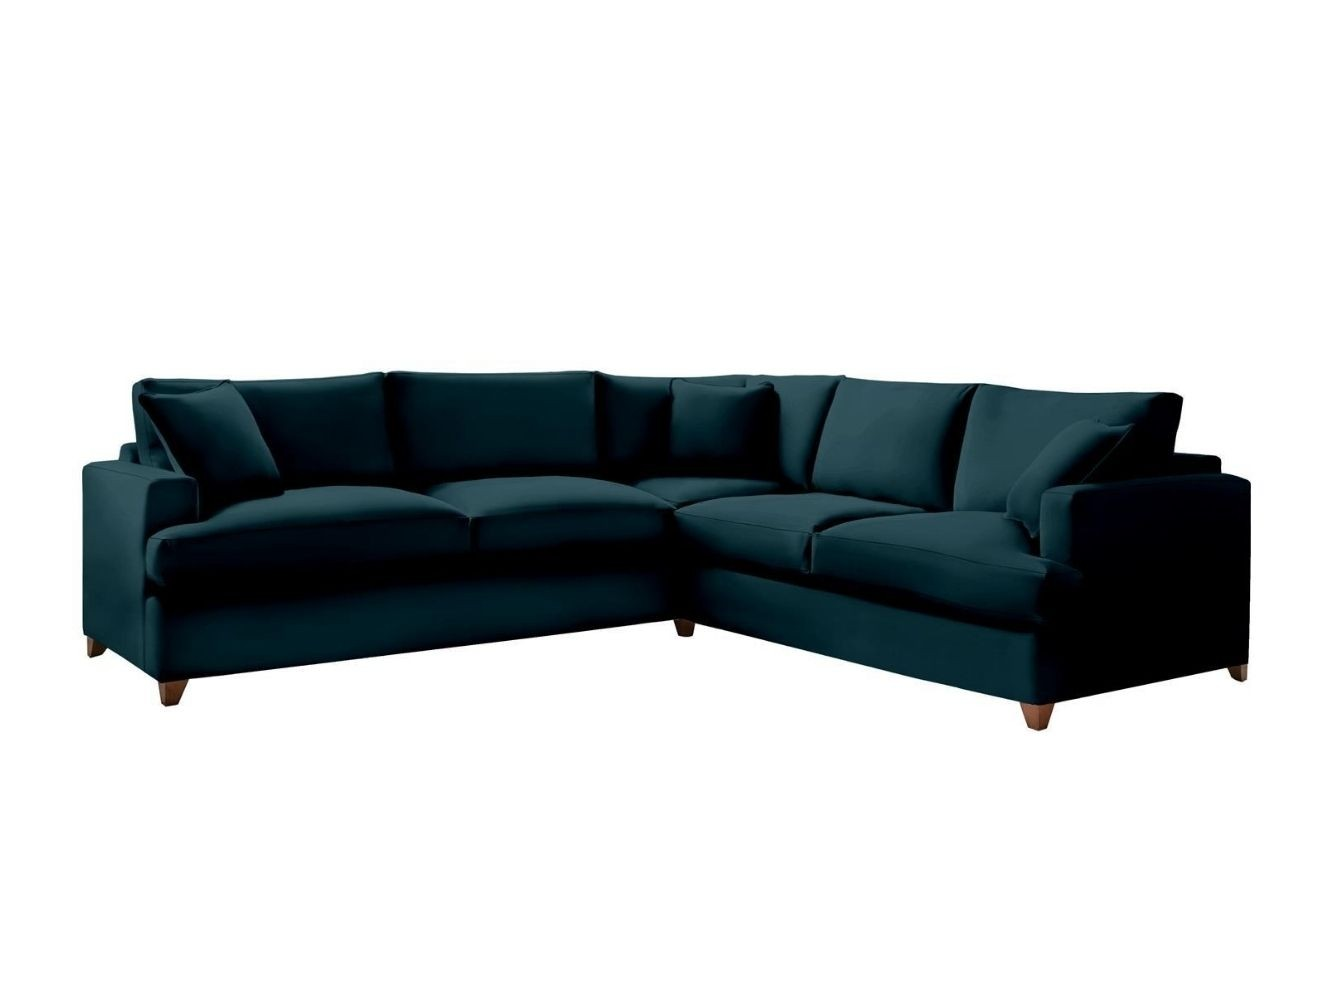 This is how I look in Stain Resistant Deep Velvet Galaxy with siliconized hollow fibre seat cushions